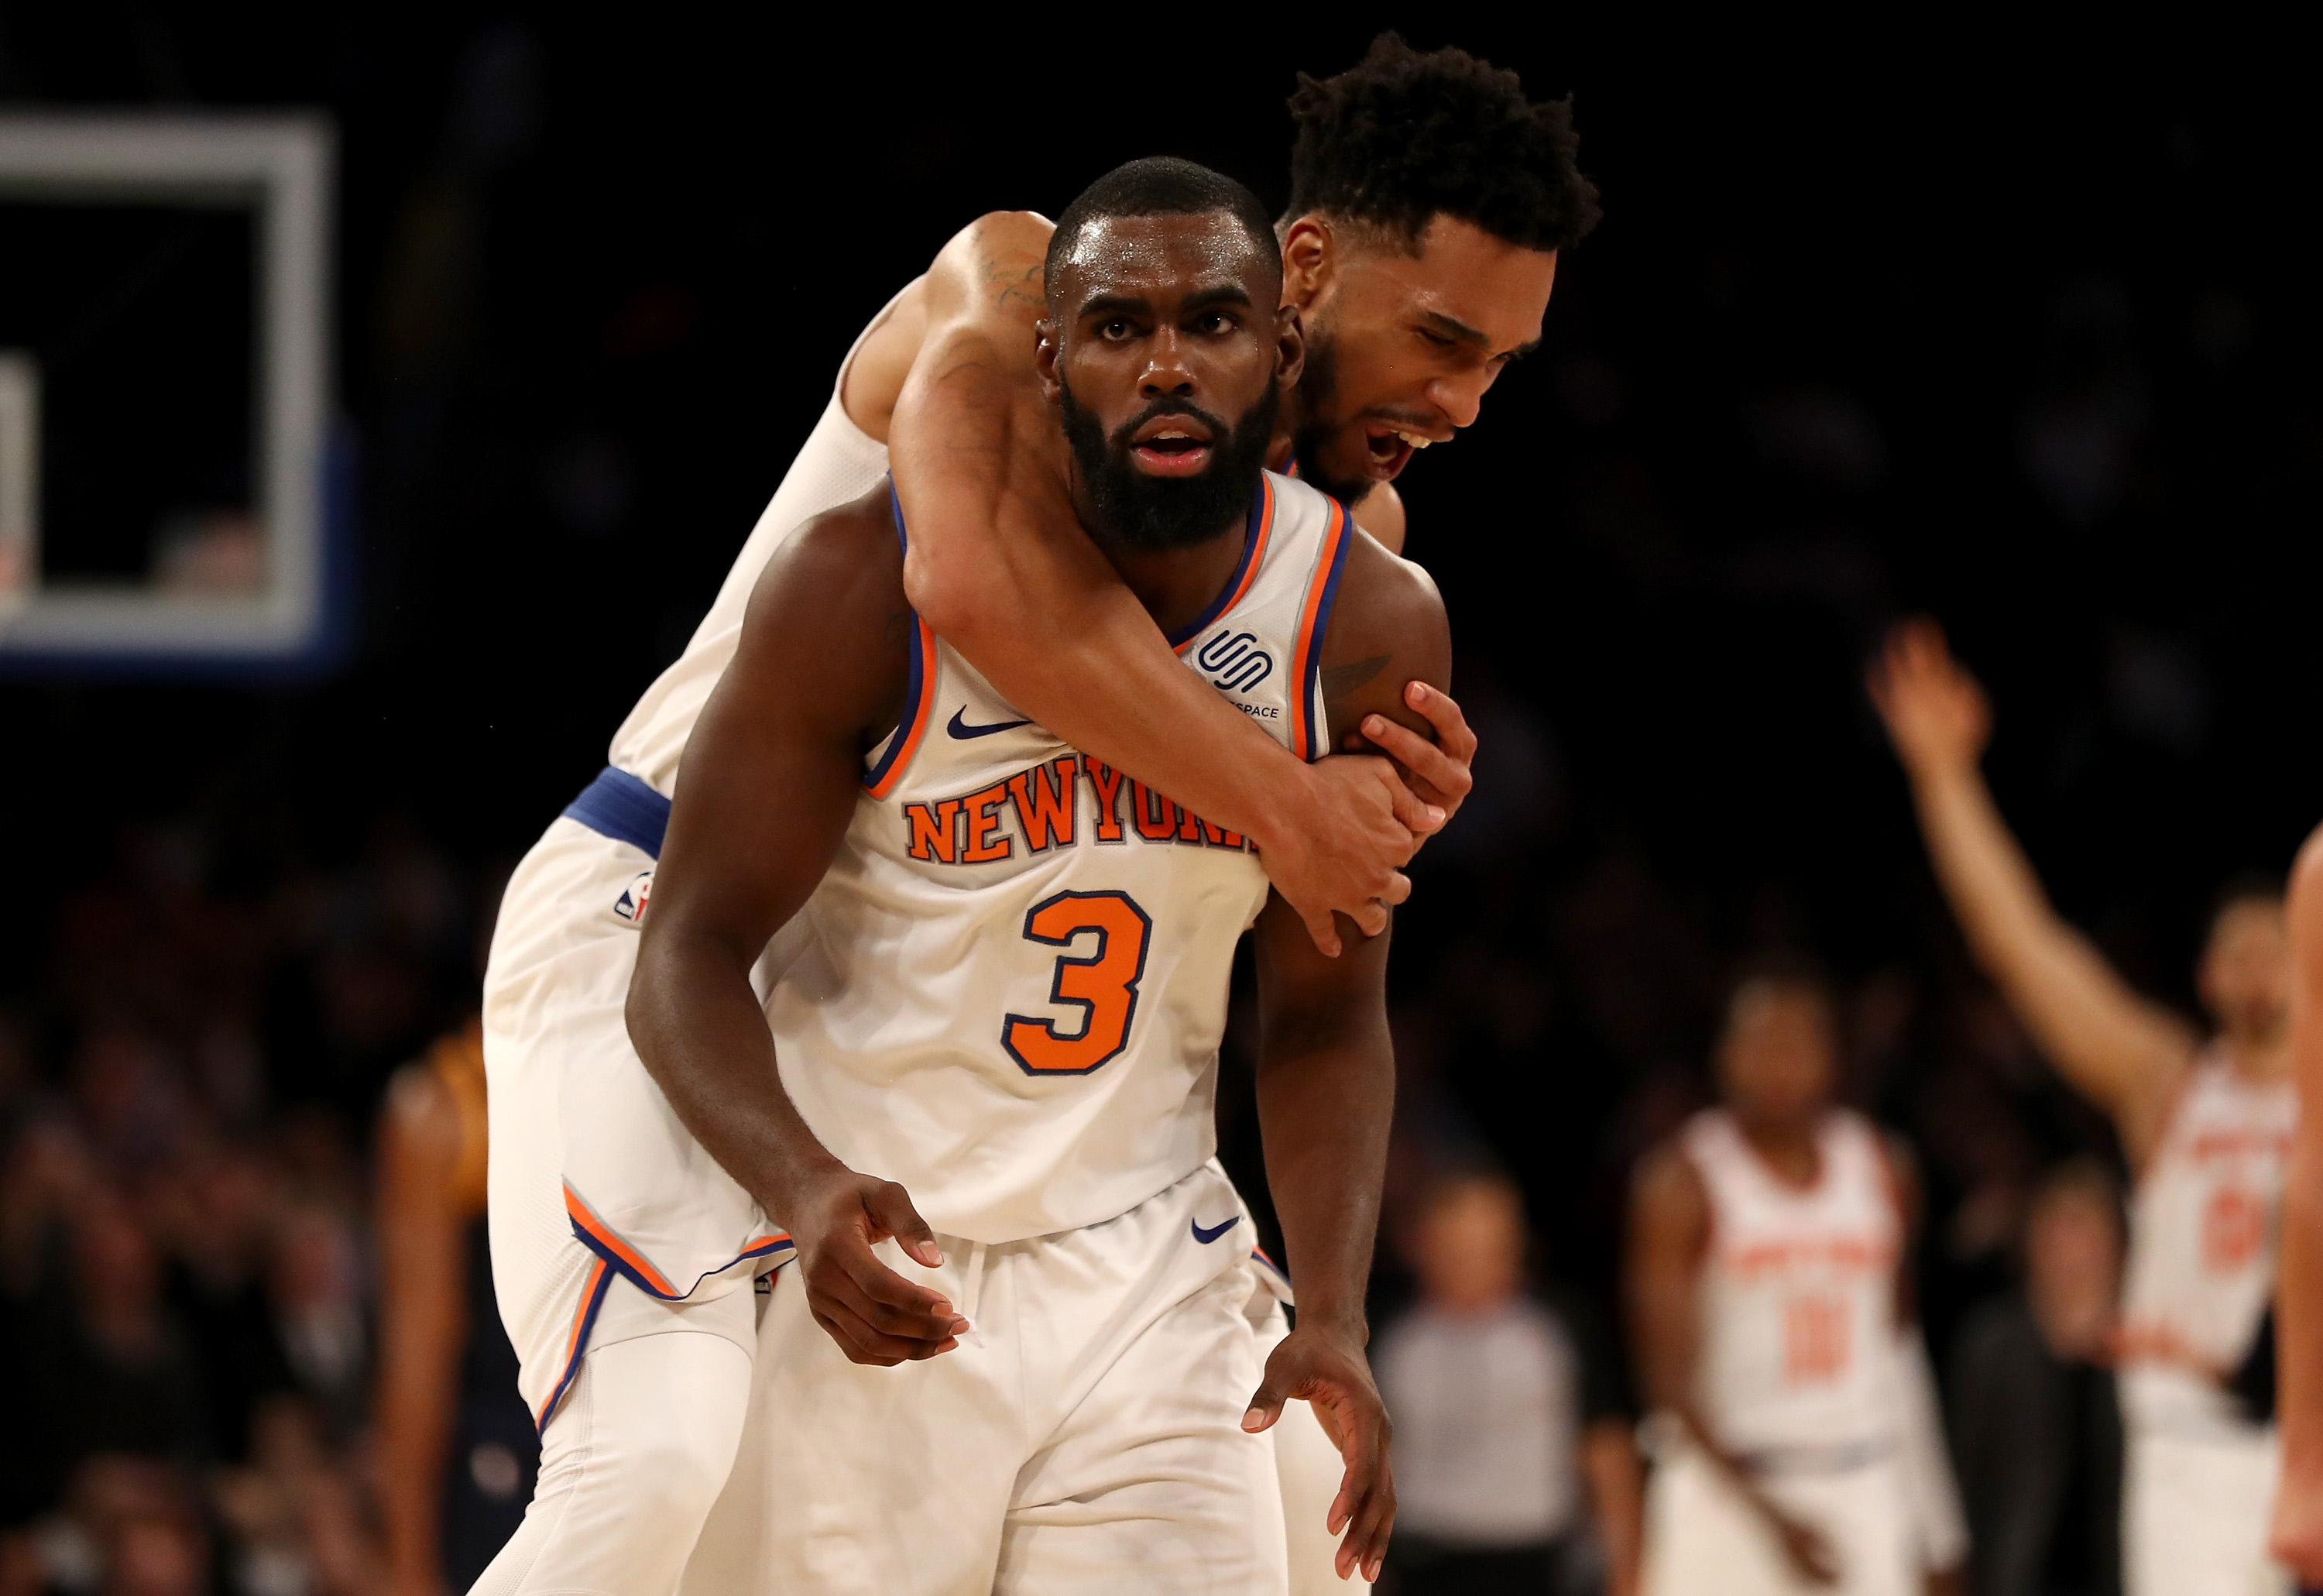 King James, deemed 'Queen', gets last laugh against New York Knicks